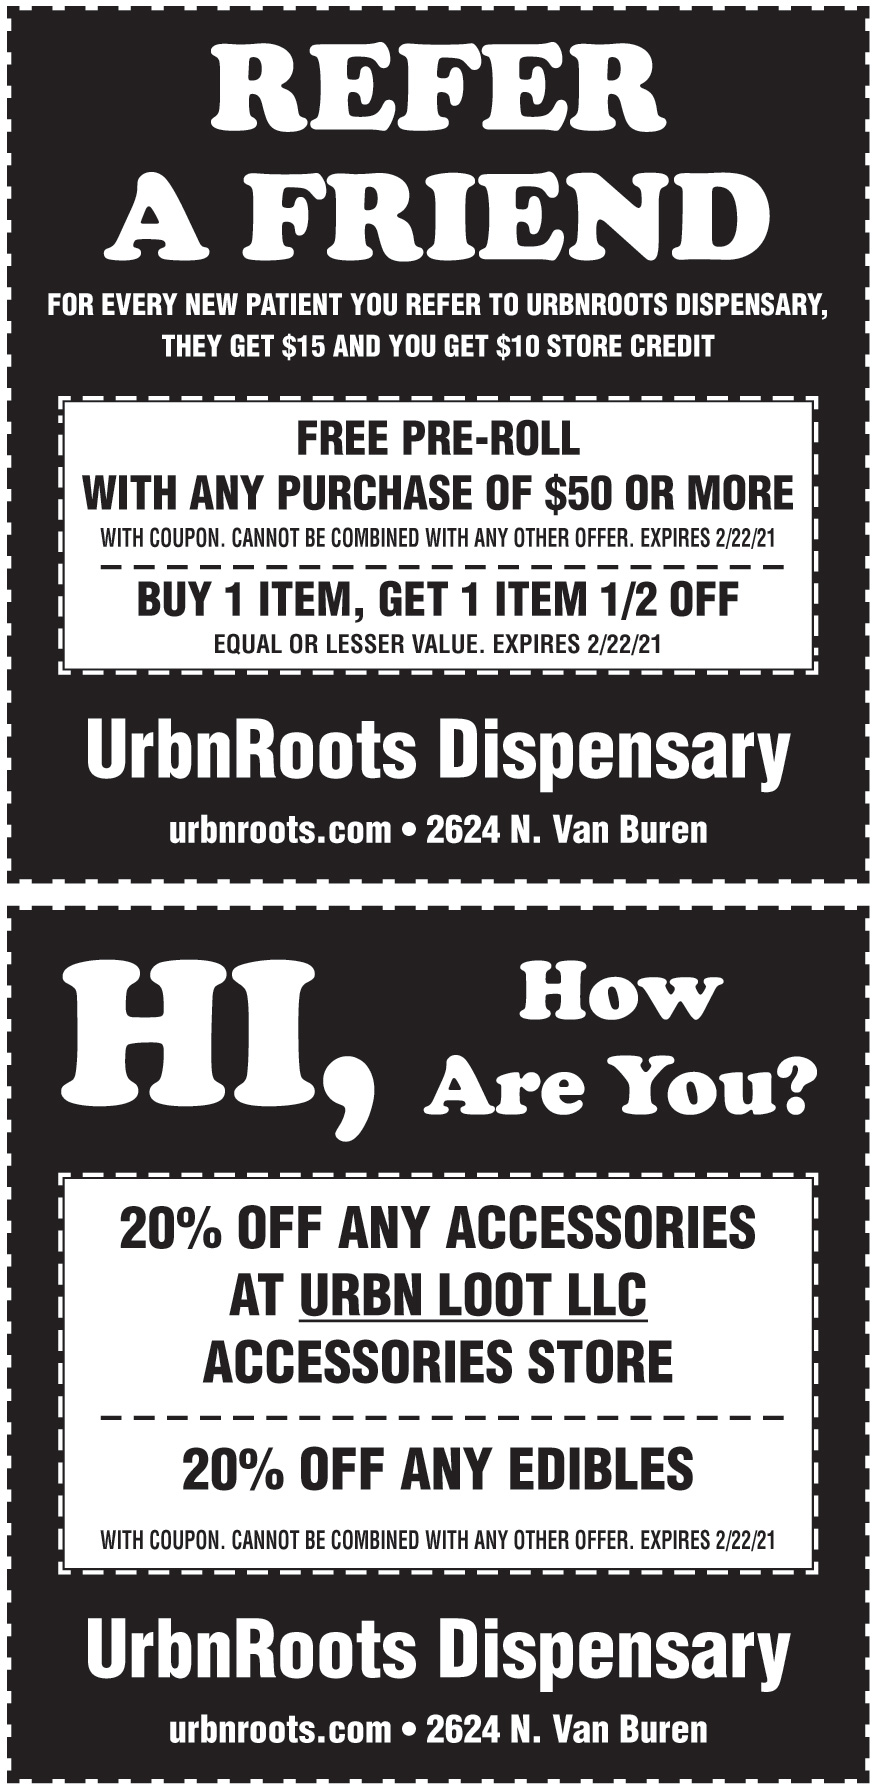 URBN ROOTS DISPENSARY